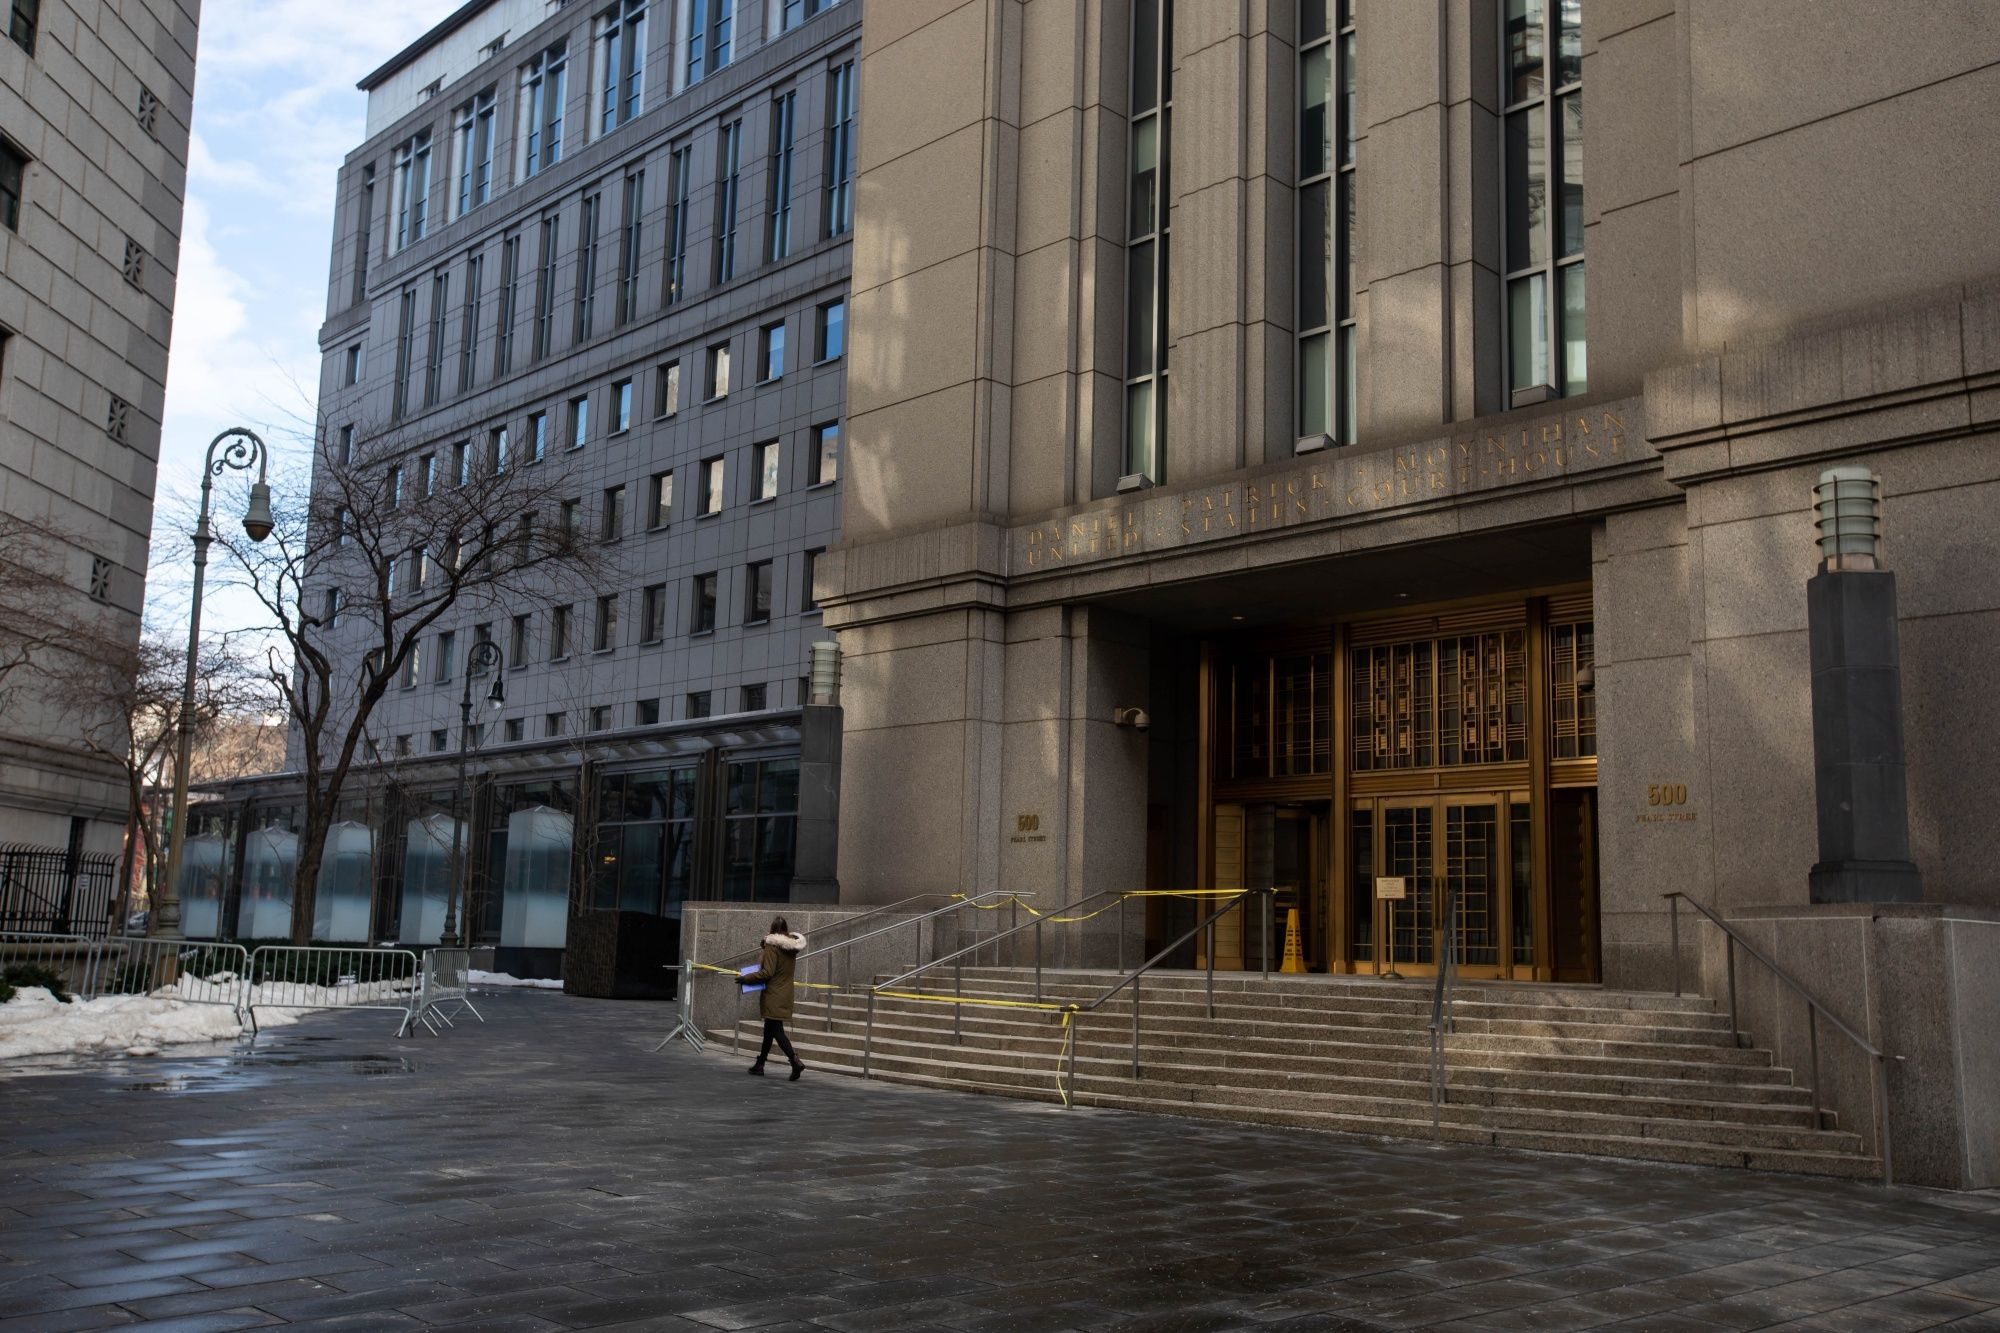 A pedestrian passes in front of the Daniel Patrick Moynihan U.S. District Court for the Southern District of New York Courthouse in New York, U.S., on Monday, Dec. 21, 2020. With vaccinations heralding a return to normalcy, the next year should see courtrooms around the world coming back to life. Ghislaine Maxwell, China critic Jimmy Lai and Samsung heir Jay Y. Lee are among those facing high-profile criminal cases in 2021. Photographer: Michael Nagle/Bloomberg